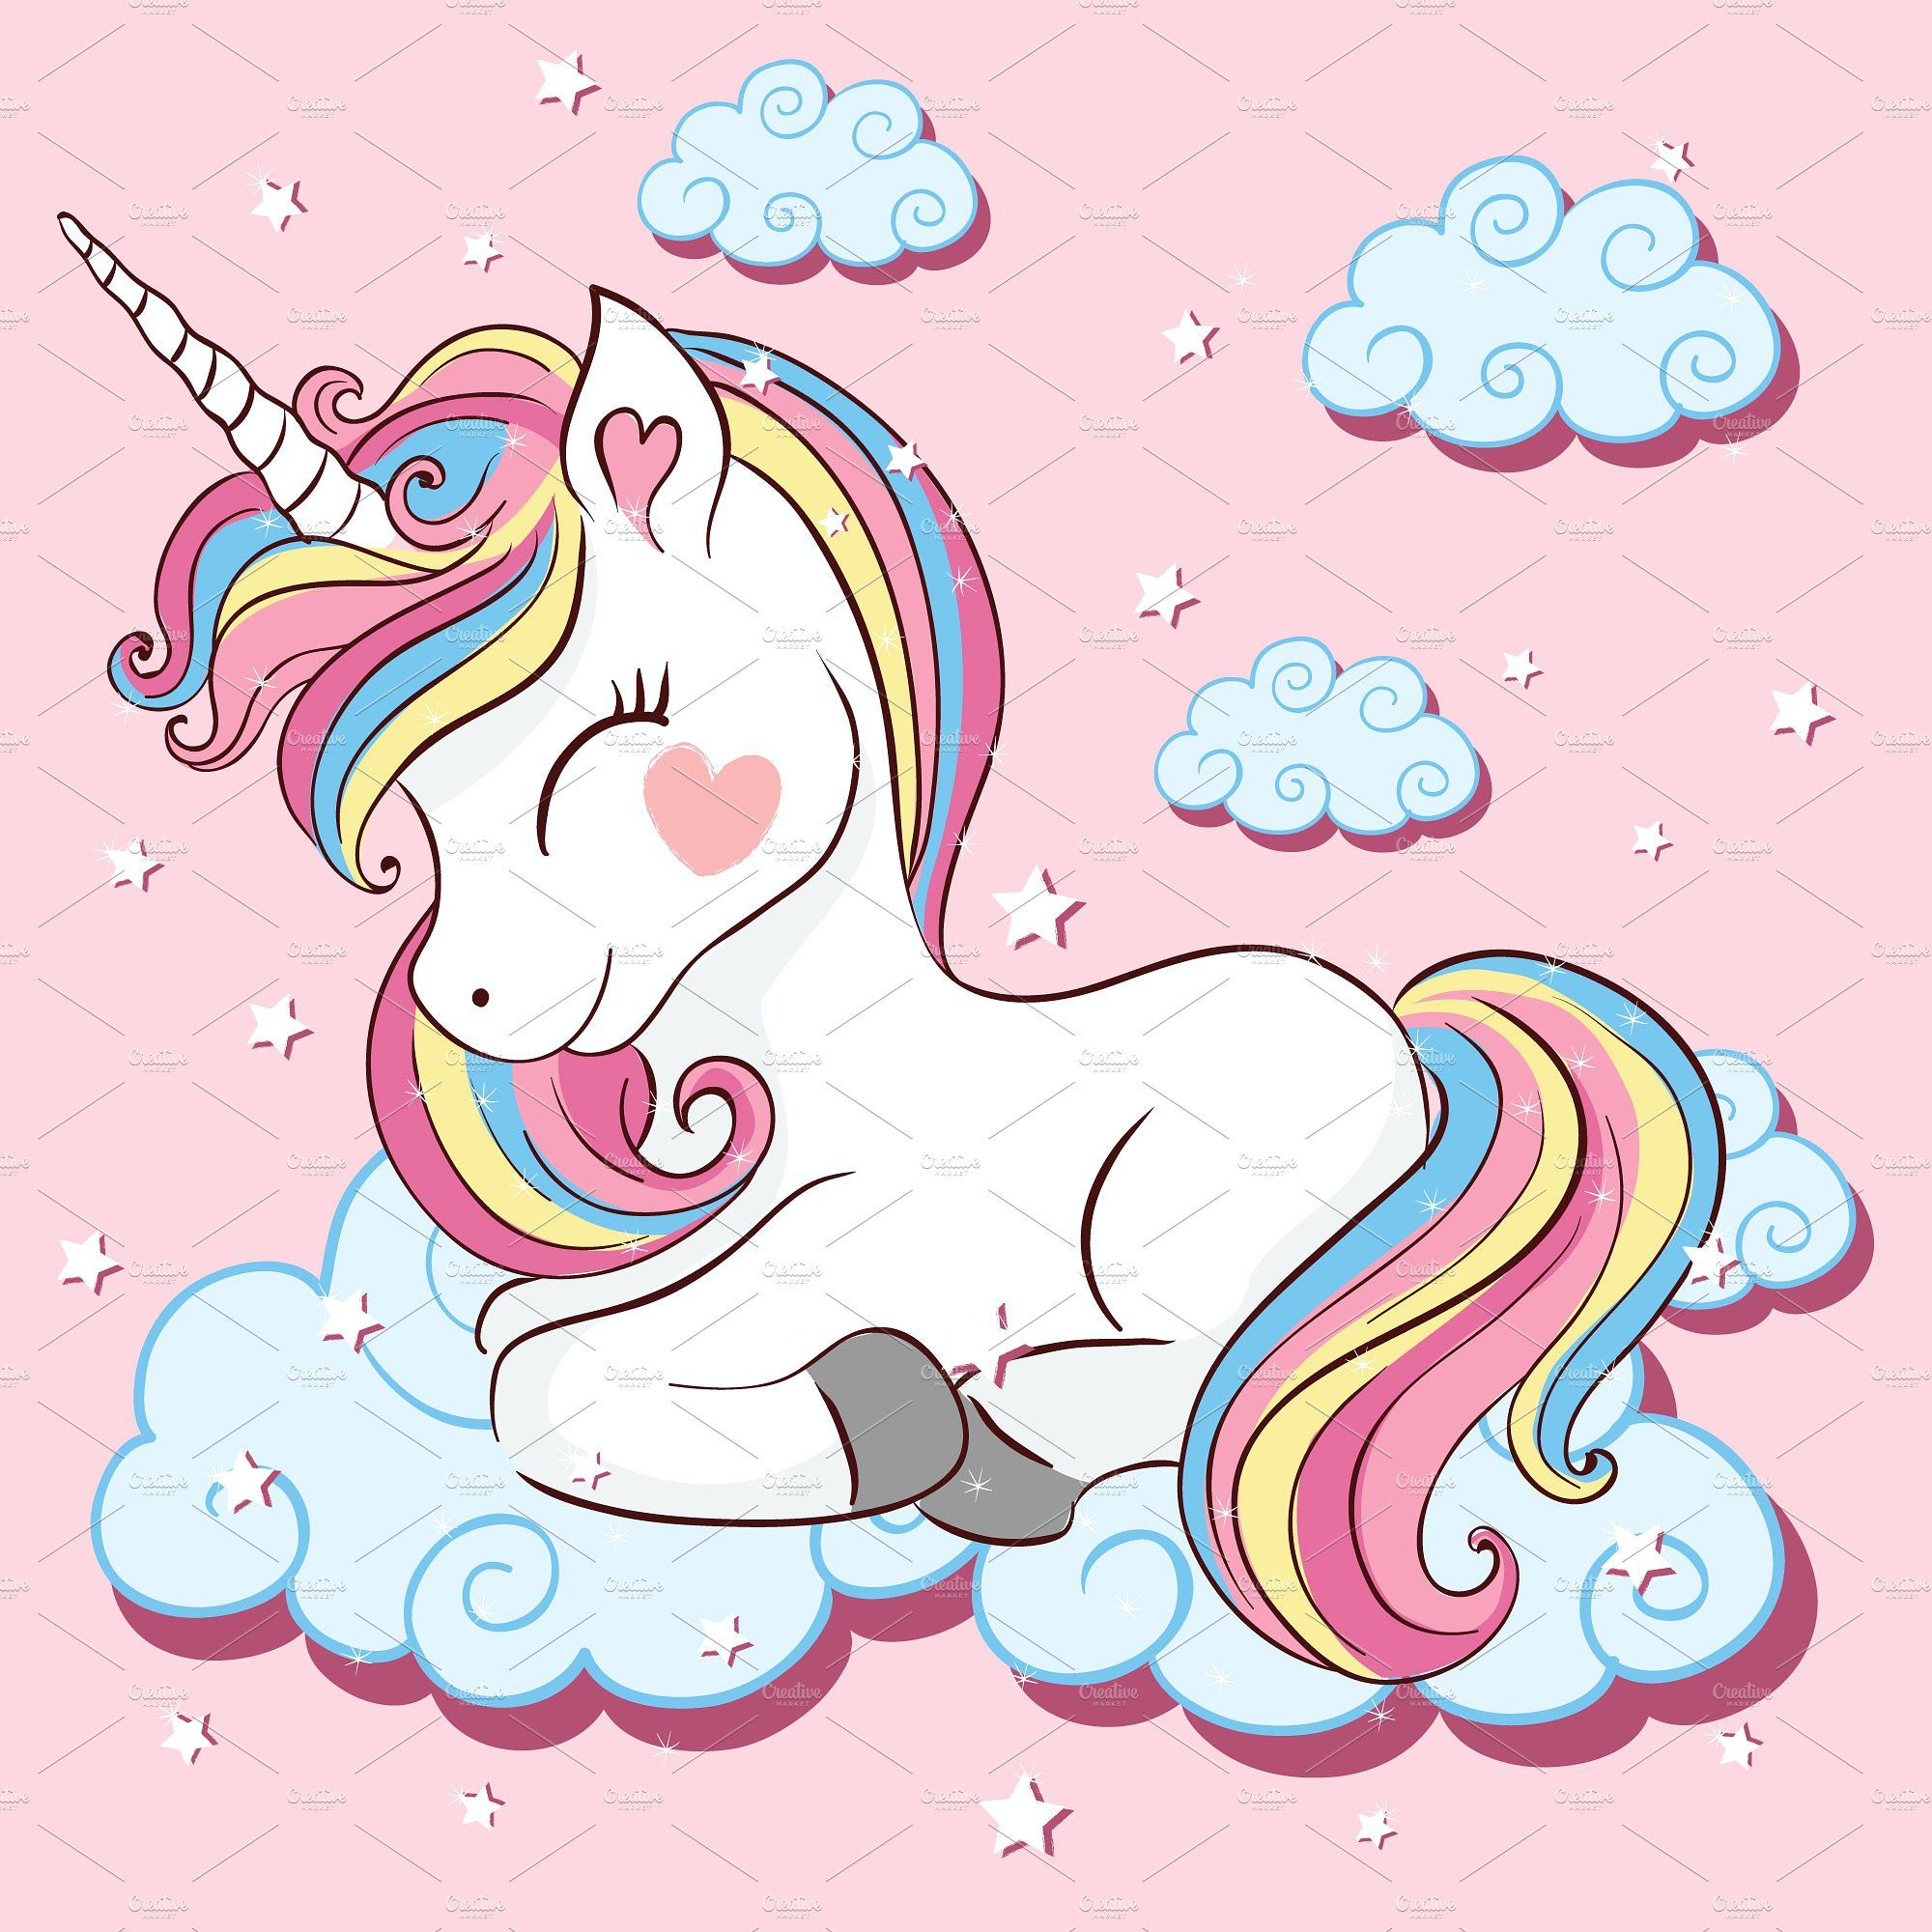 10 Cute Unicorn Cartoon Vector Unicorn Illustration Unicorn